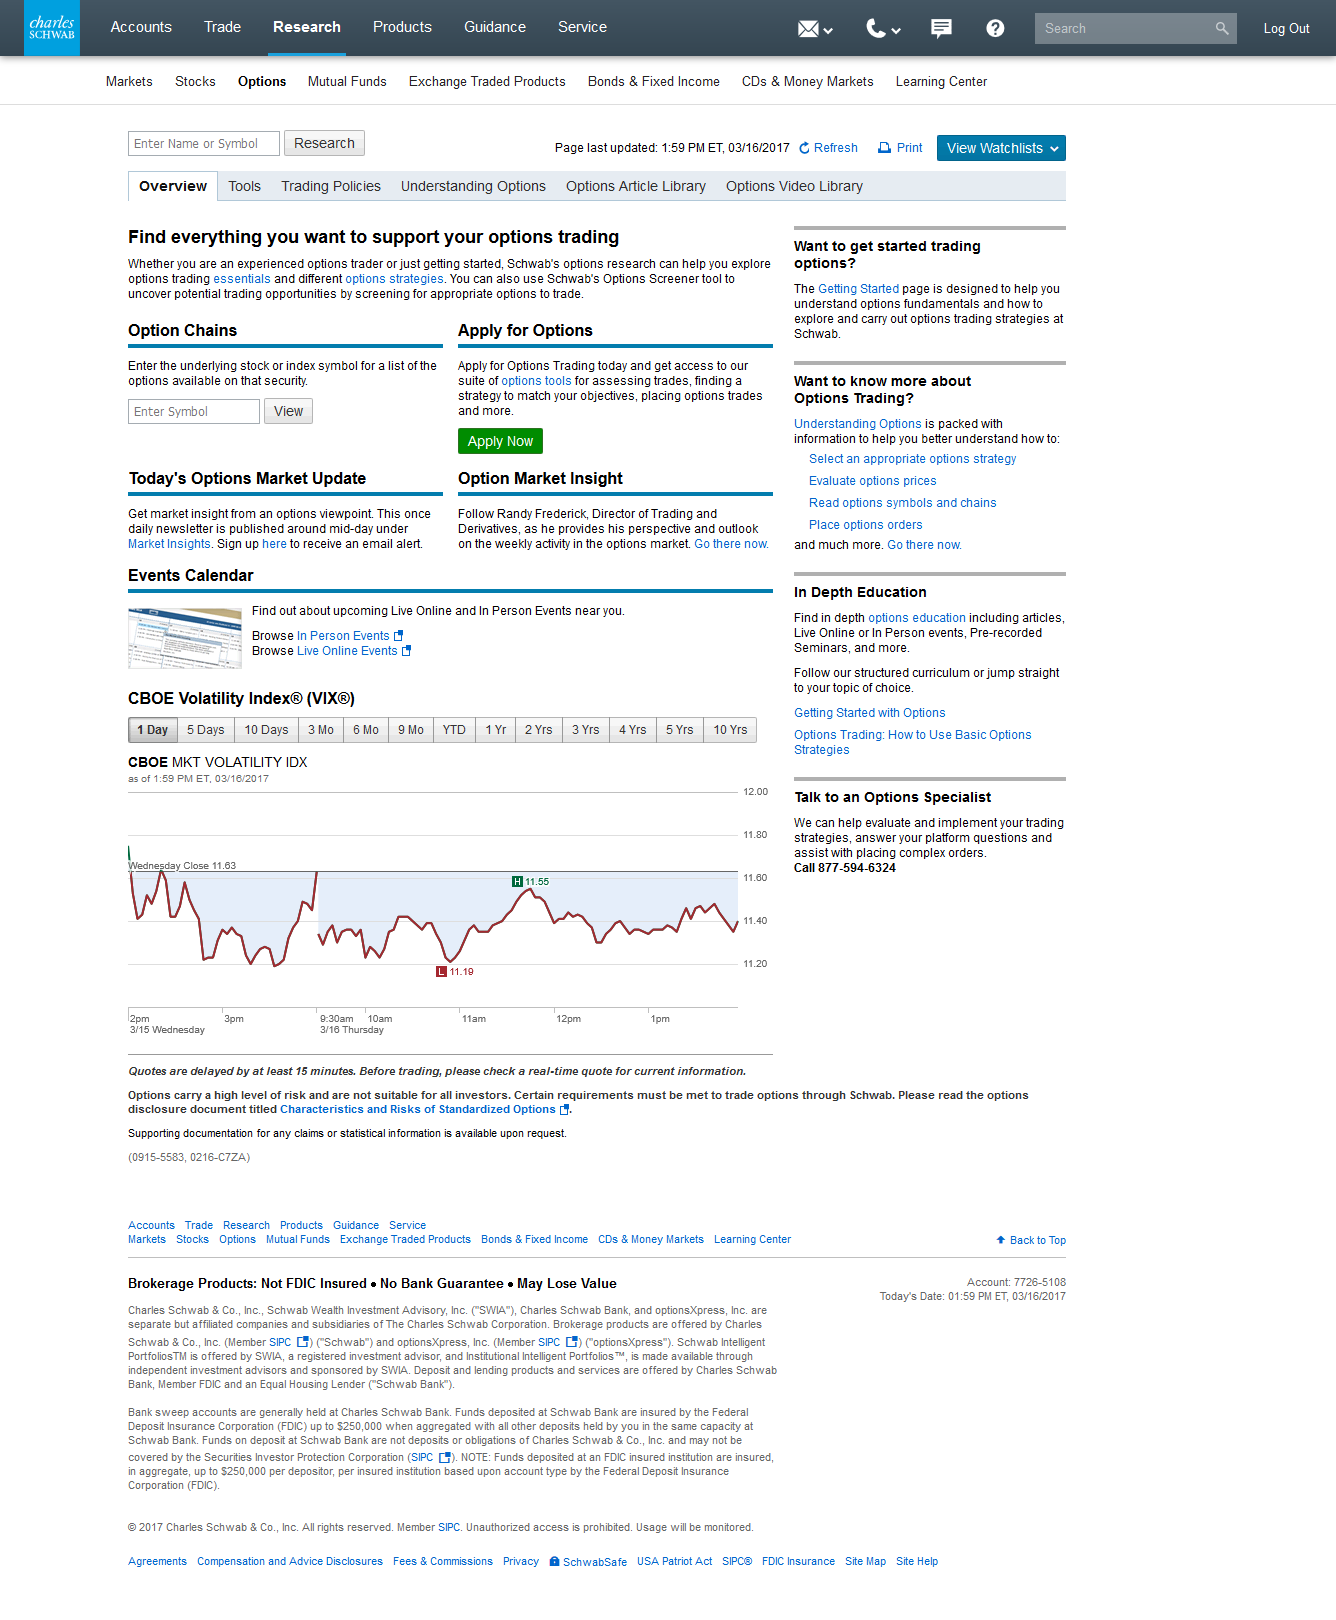 overview of resources available on a schwab brokerage account for learning about options